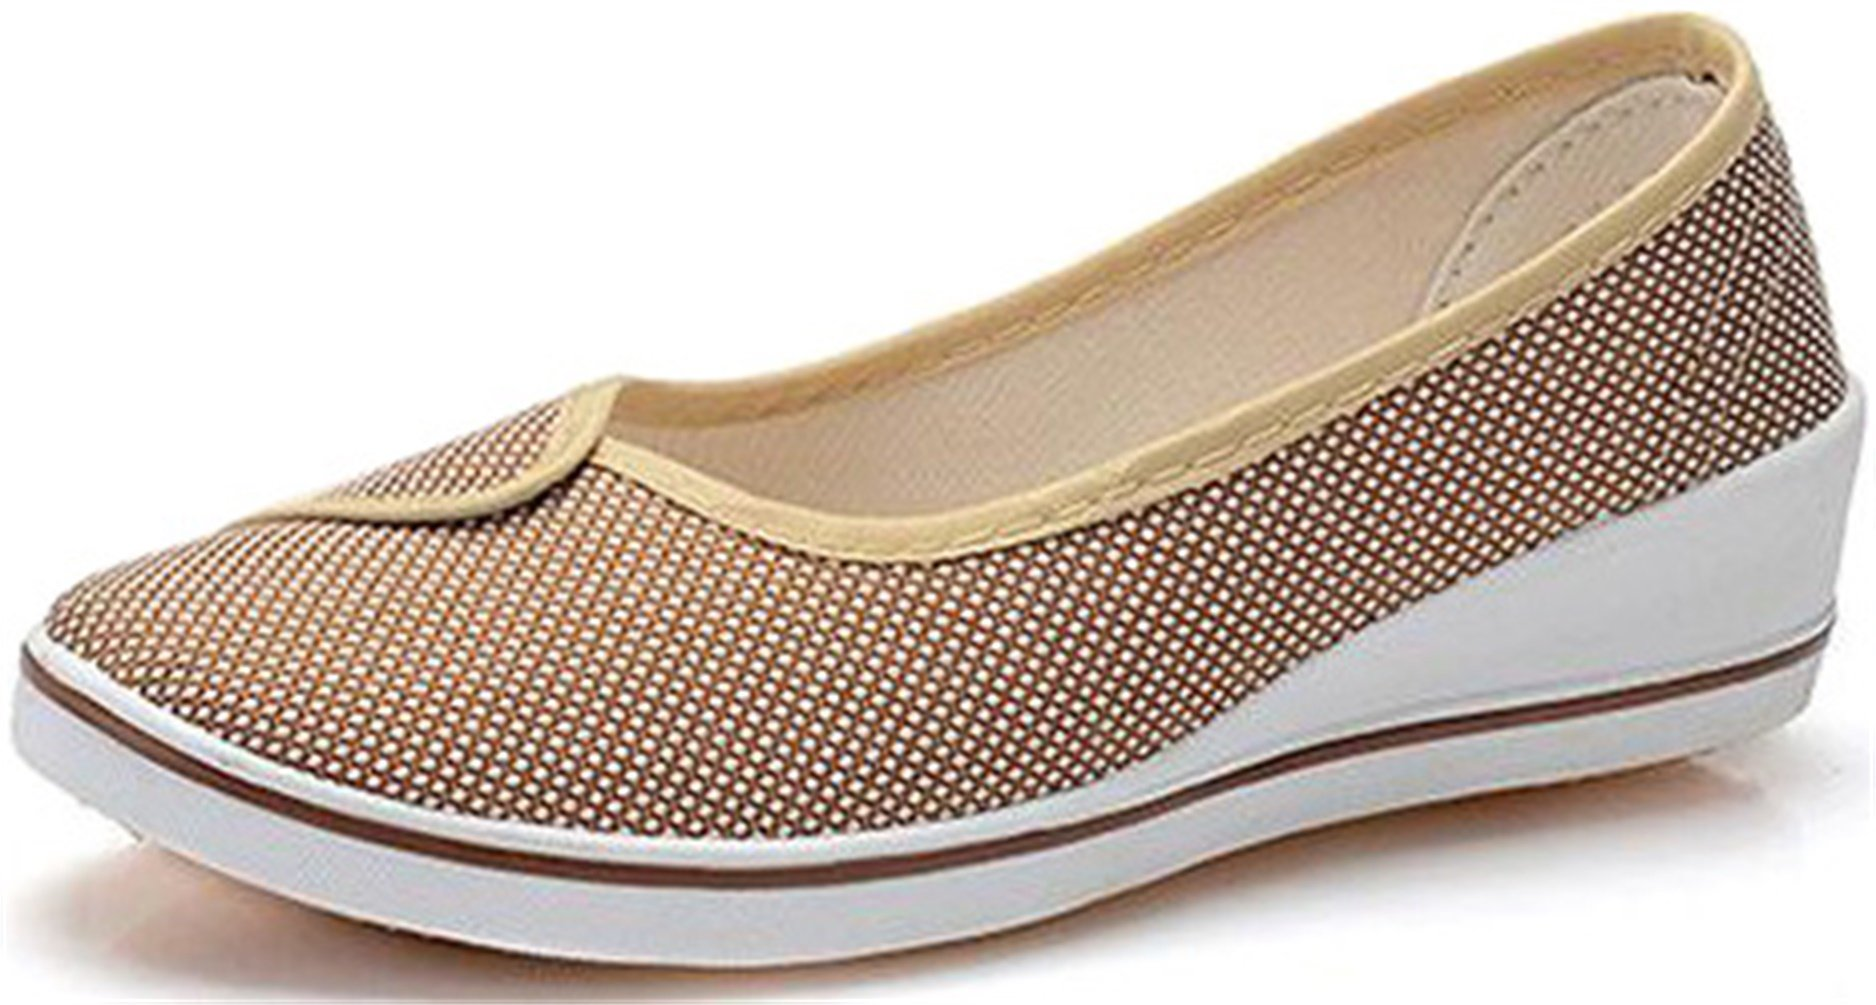 PPXID Women's Canvas Wedge Slip On Loafers Dancing Shoes-Beige 7.5 US Size by PPXID (Image #1)